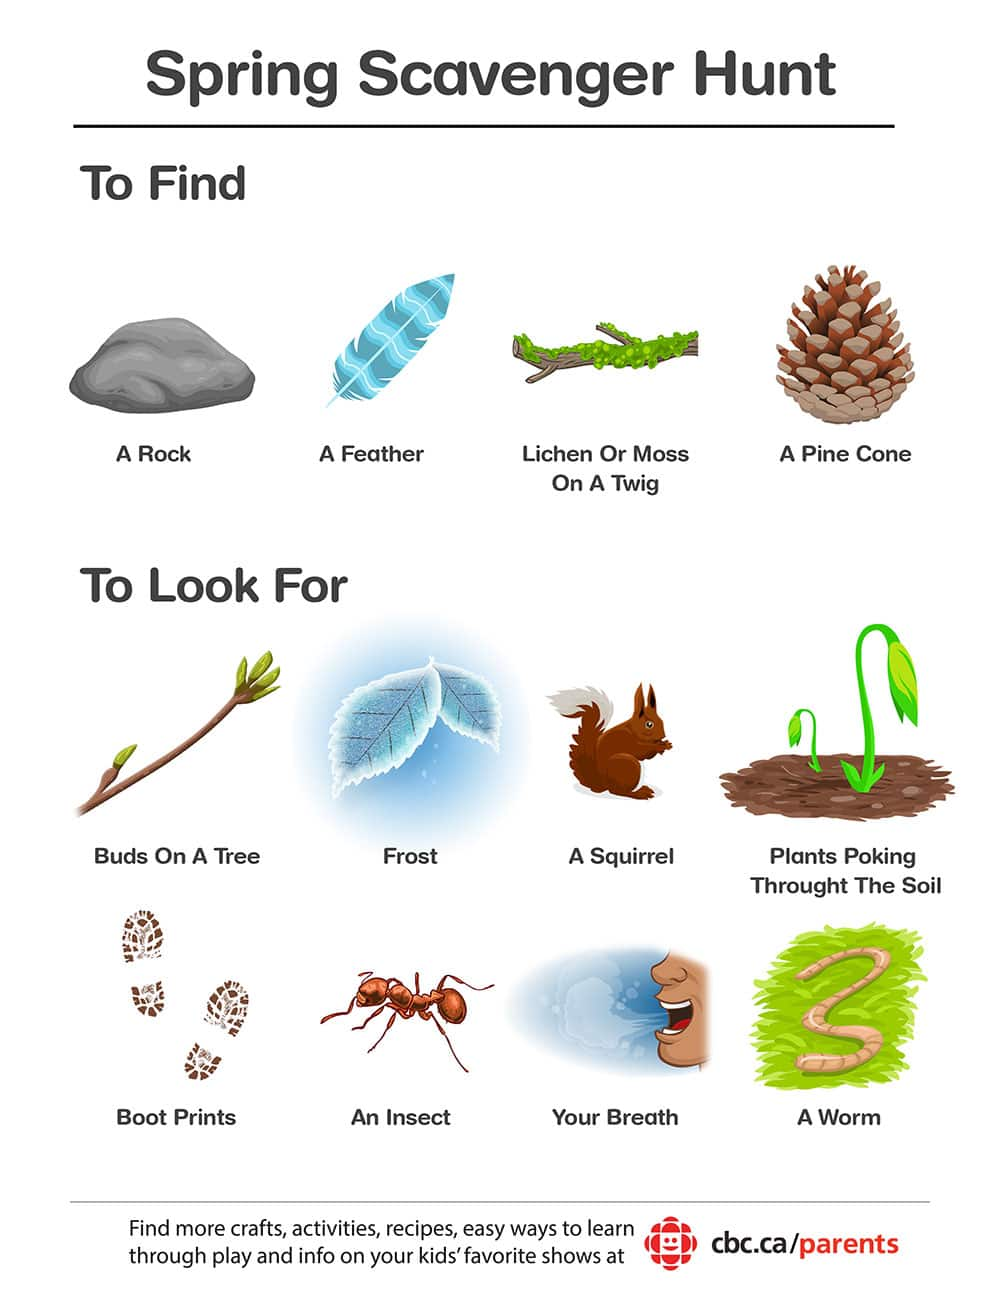 picture relating to Outdoor Scavenger Hunt Printable identified as Printable Spring Scavenger Hunt Engage in CBC Mothers and fathers